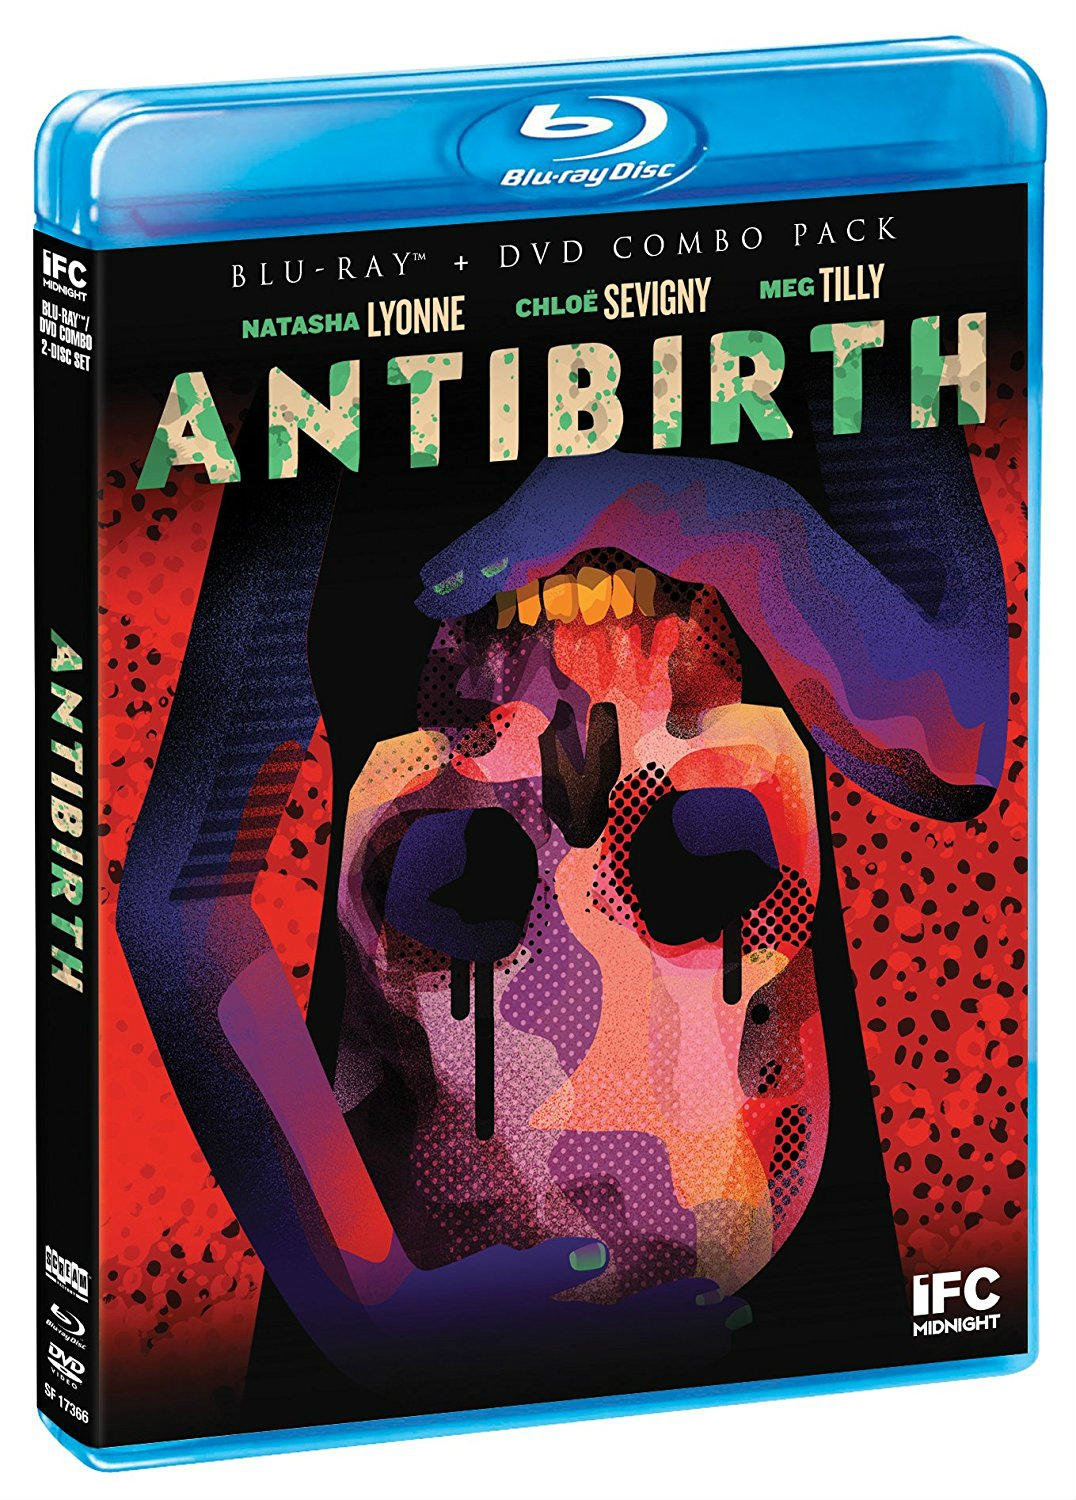 Horror Highlights: ANTIBIRTH Blu-ray / DVD, THE FIELD GUIDE TO EVIL